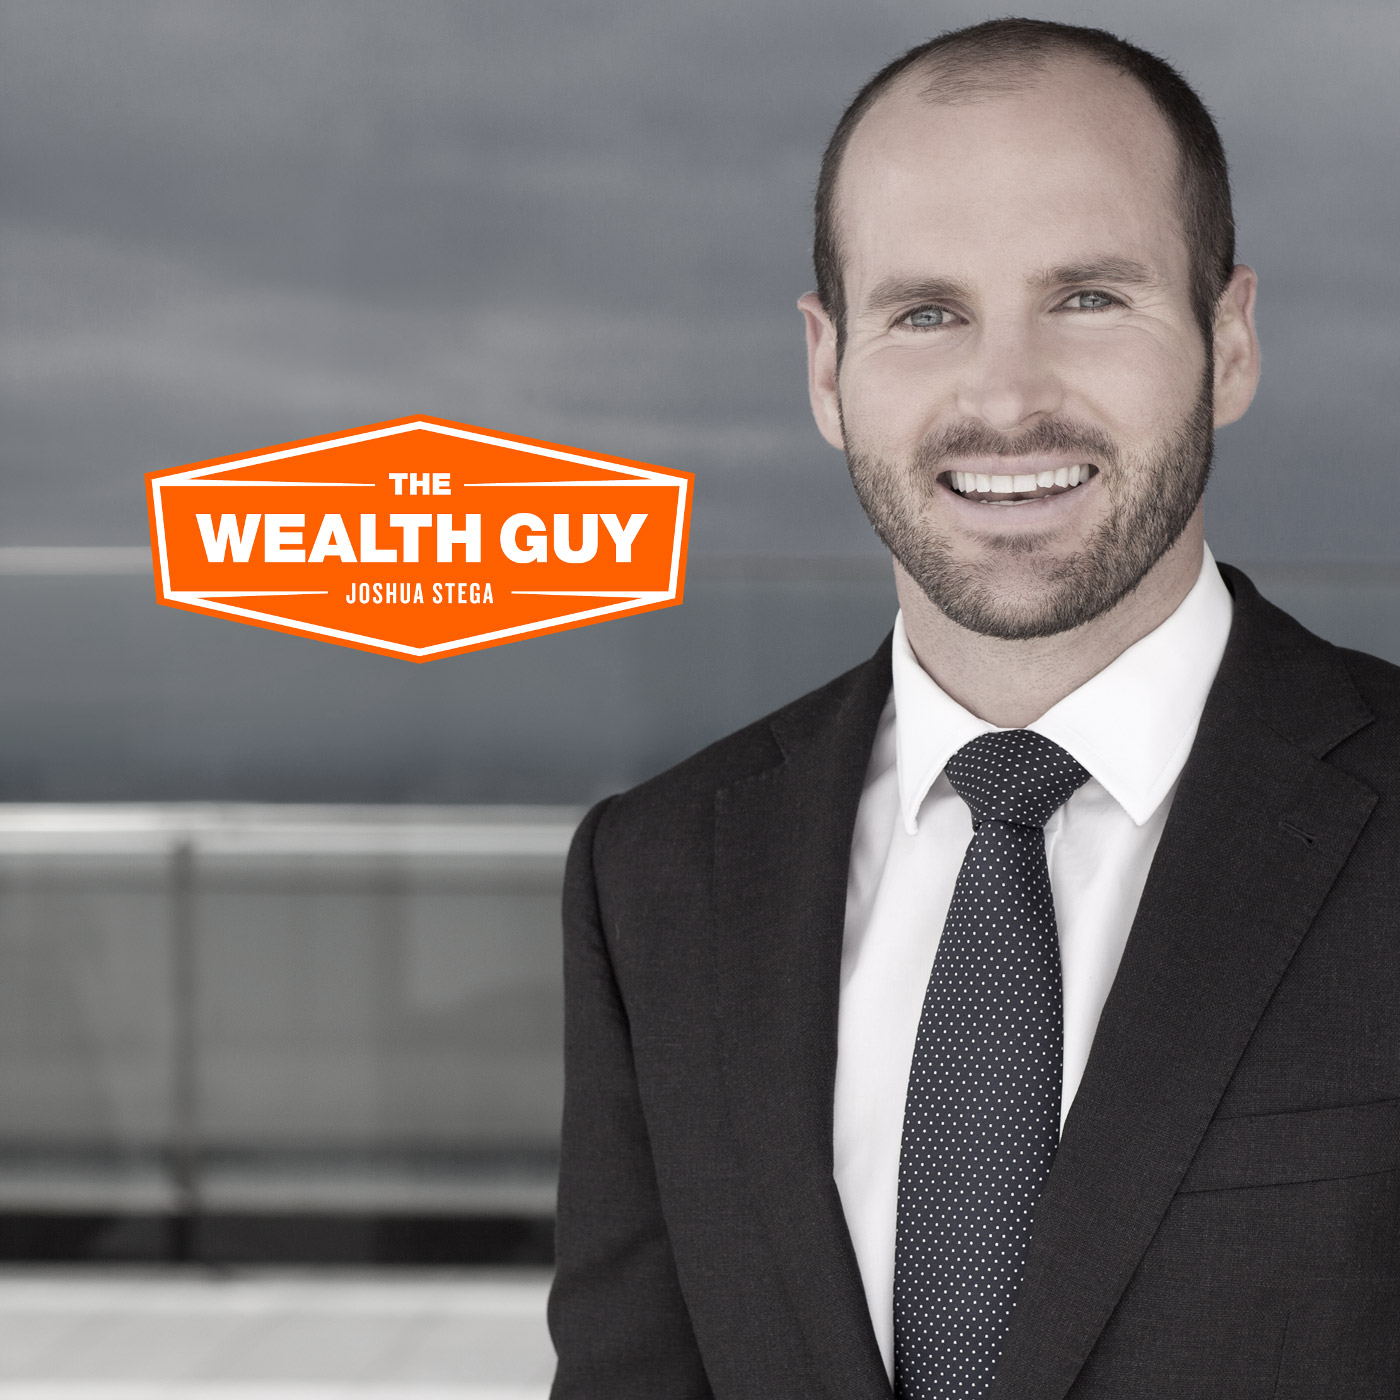 The Wealth Guy